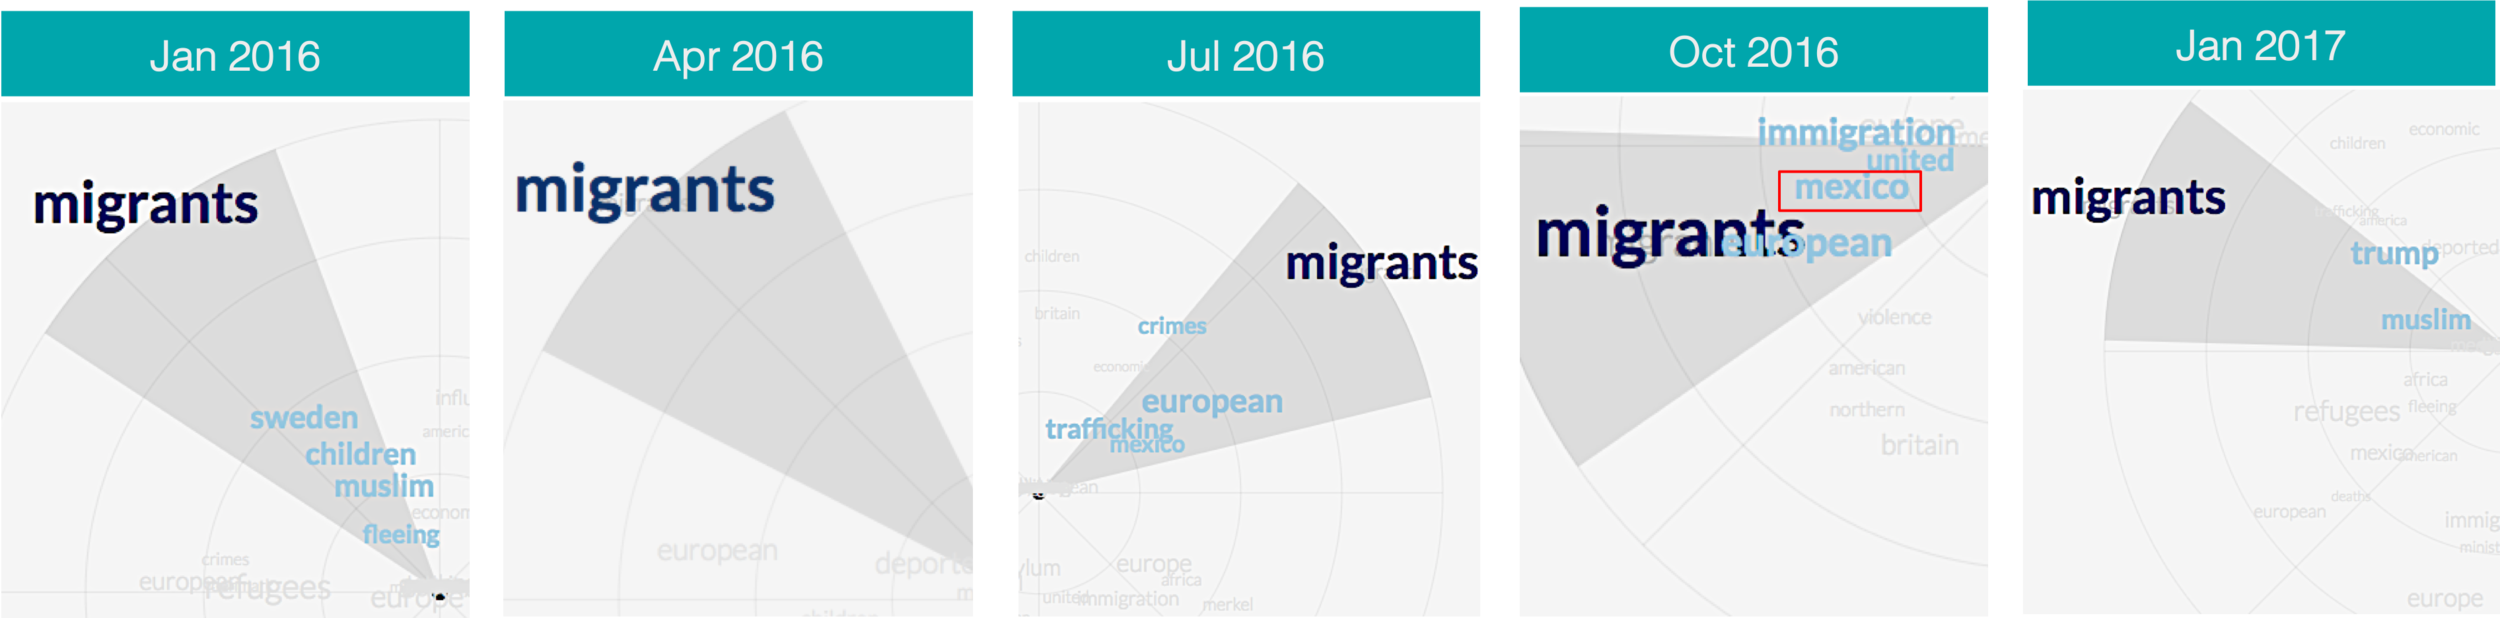 "Keyword in context for stories matching ""migrant"" with ""Mexico"" or ""Honduras"" in US media."